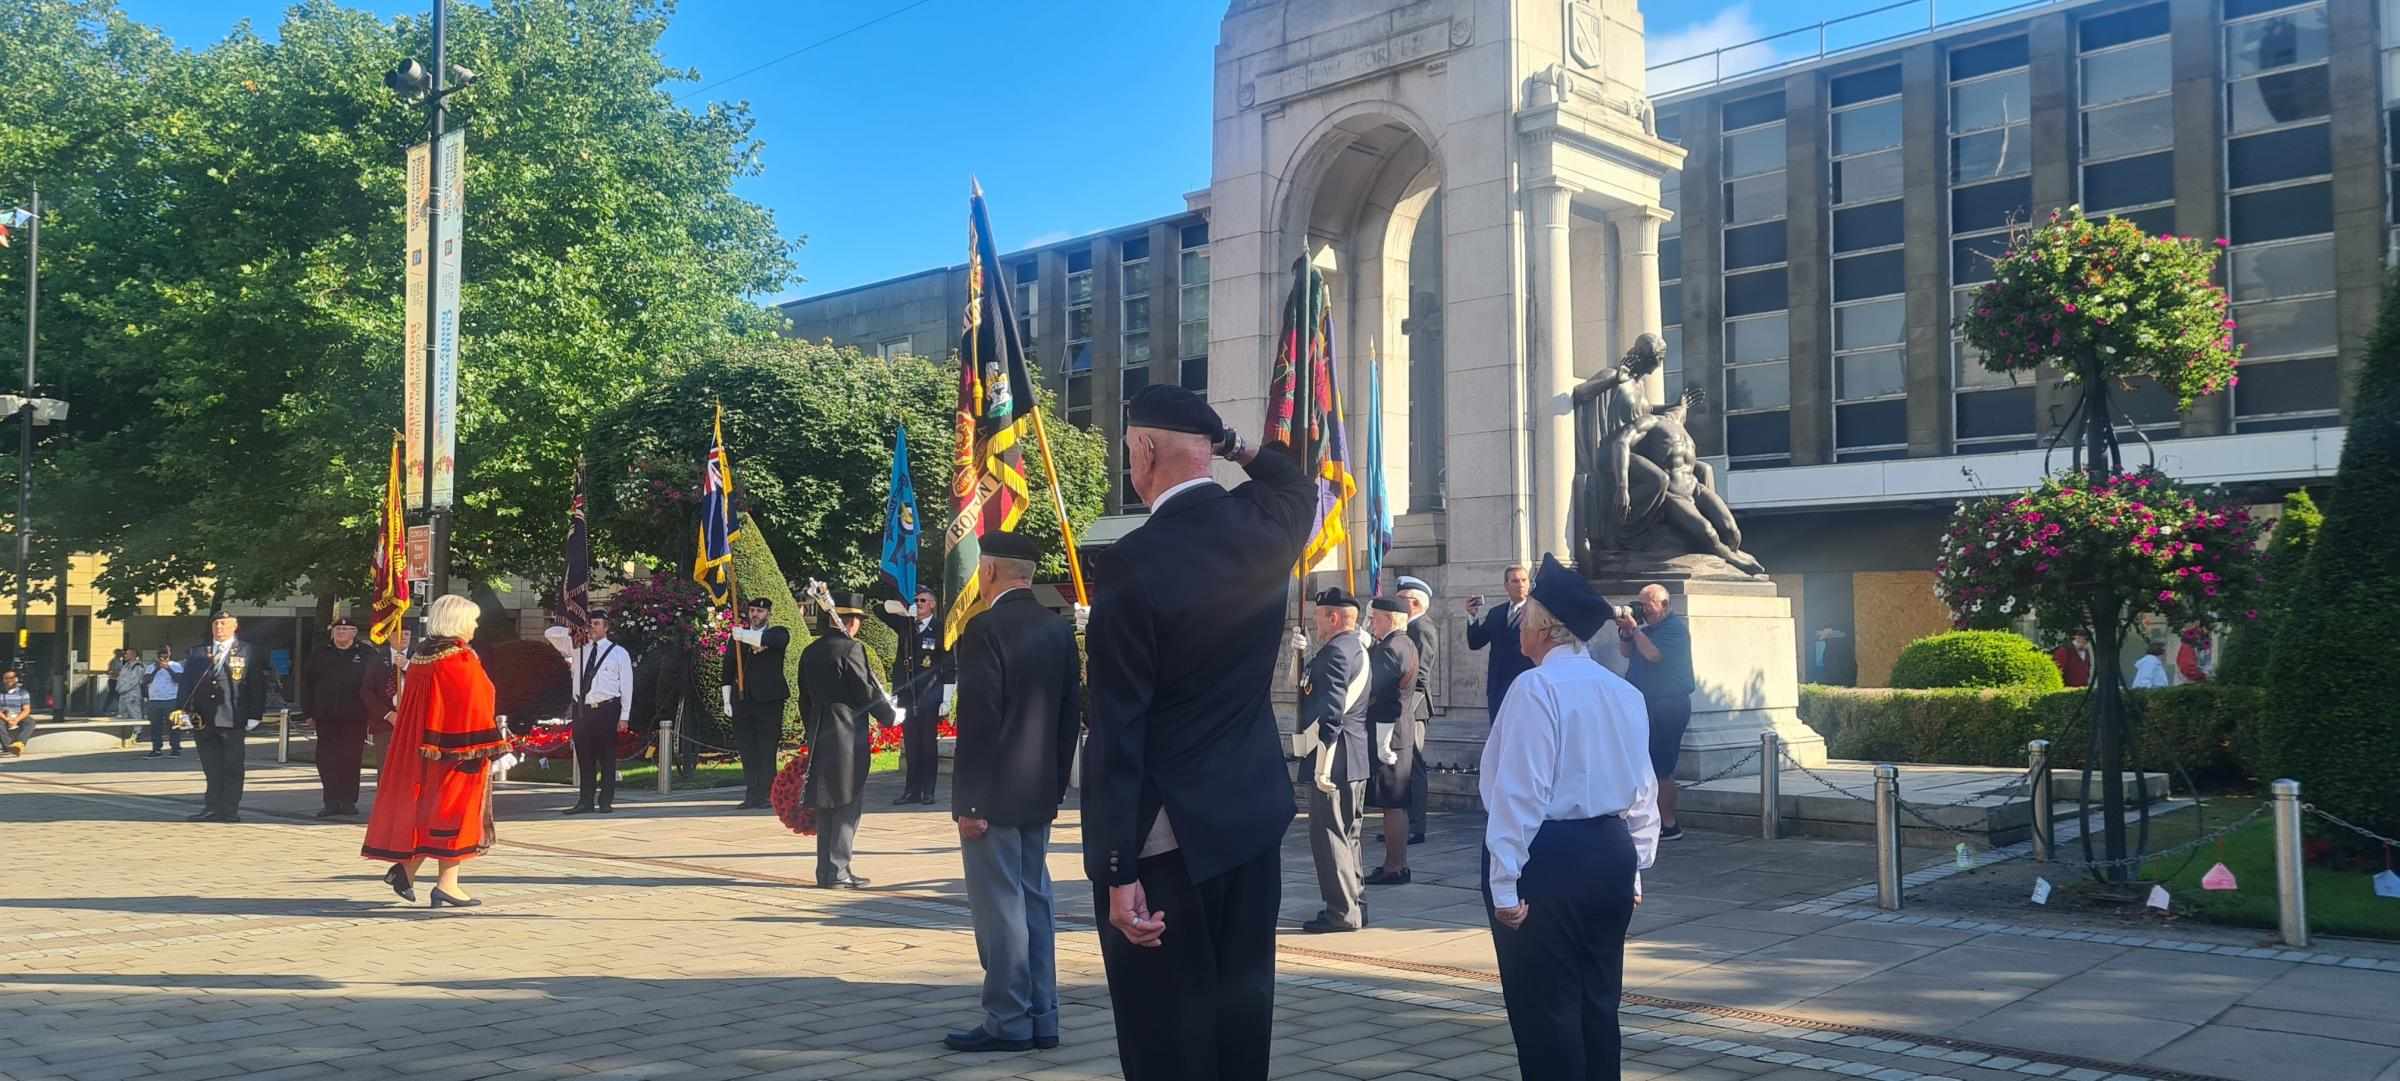 Bolton commemorates the 81st anniversary of the Battle of Britain.